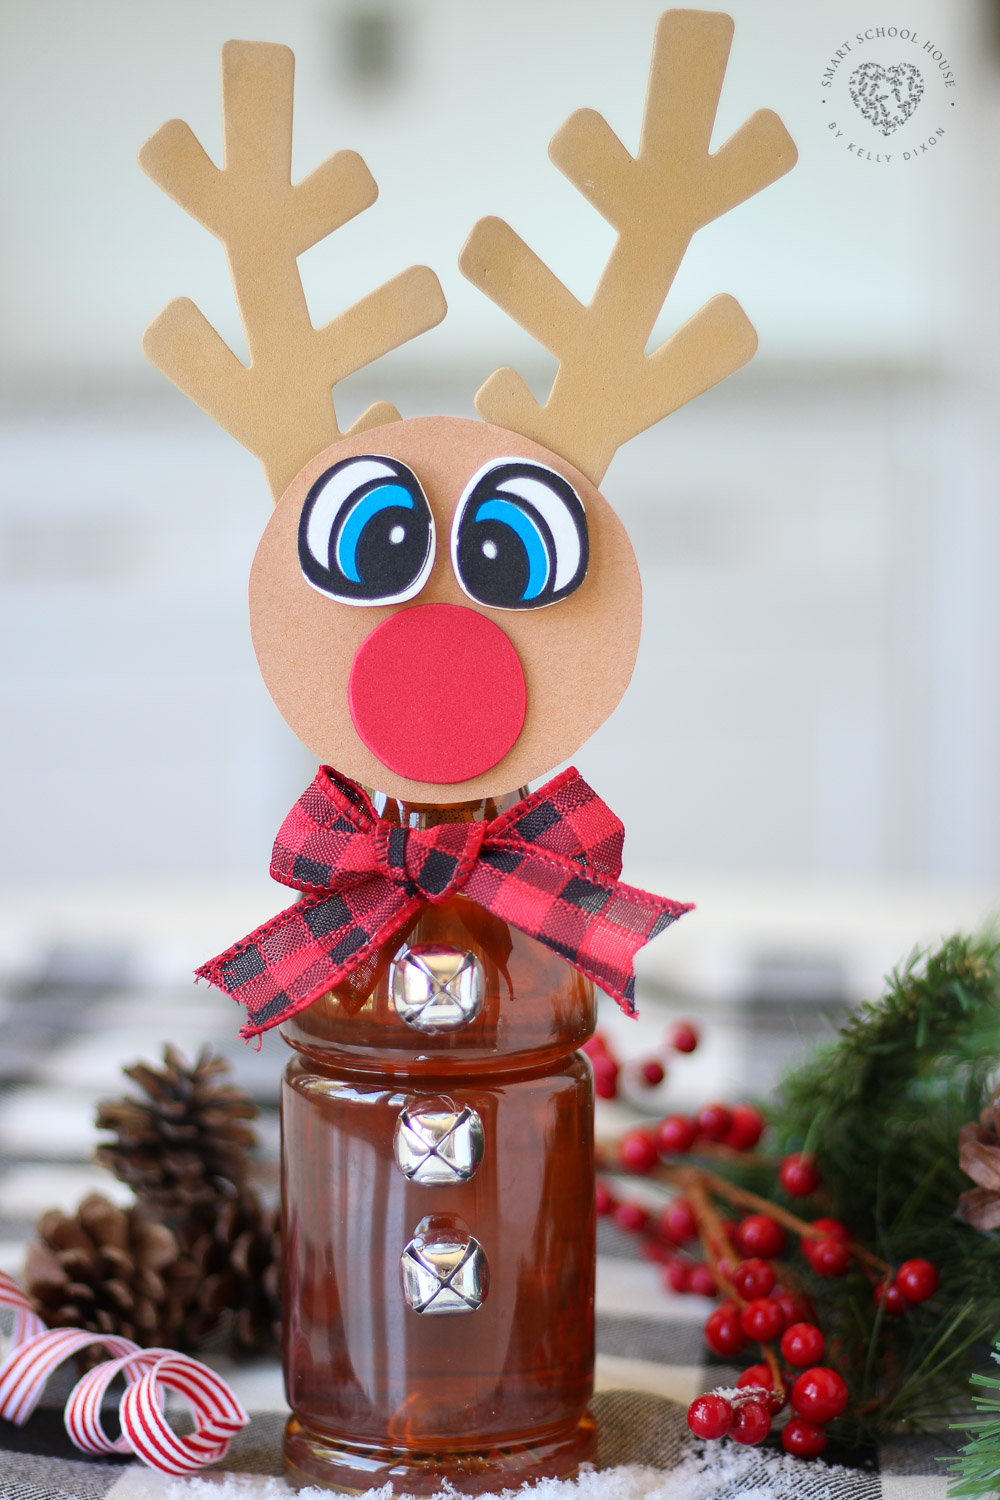 Tea Bottle Rudolph! An adorable reindeer craft idea using a bottle of iced tea.